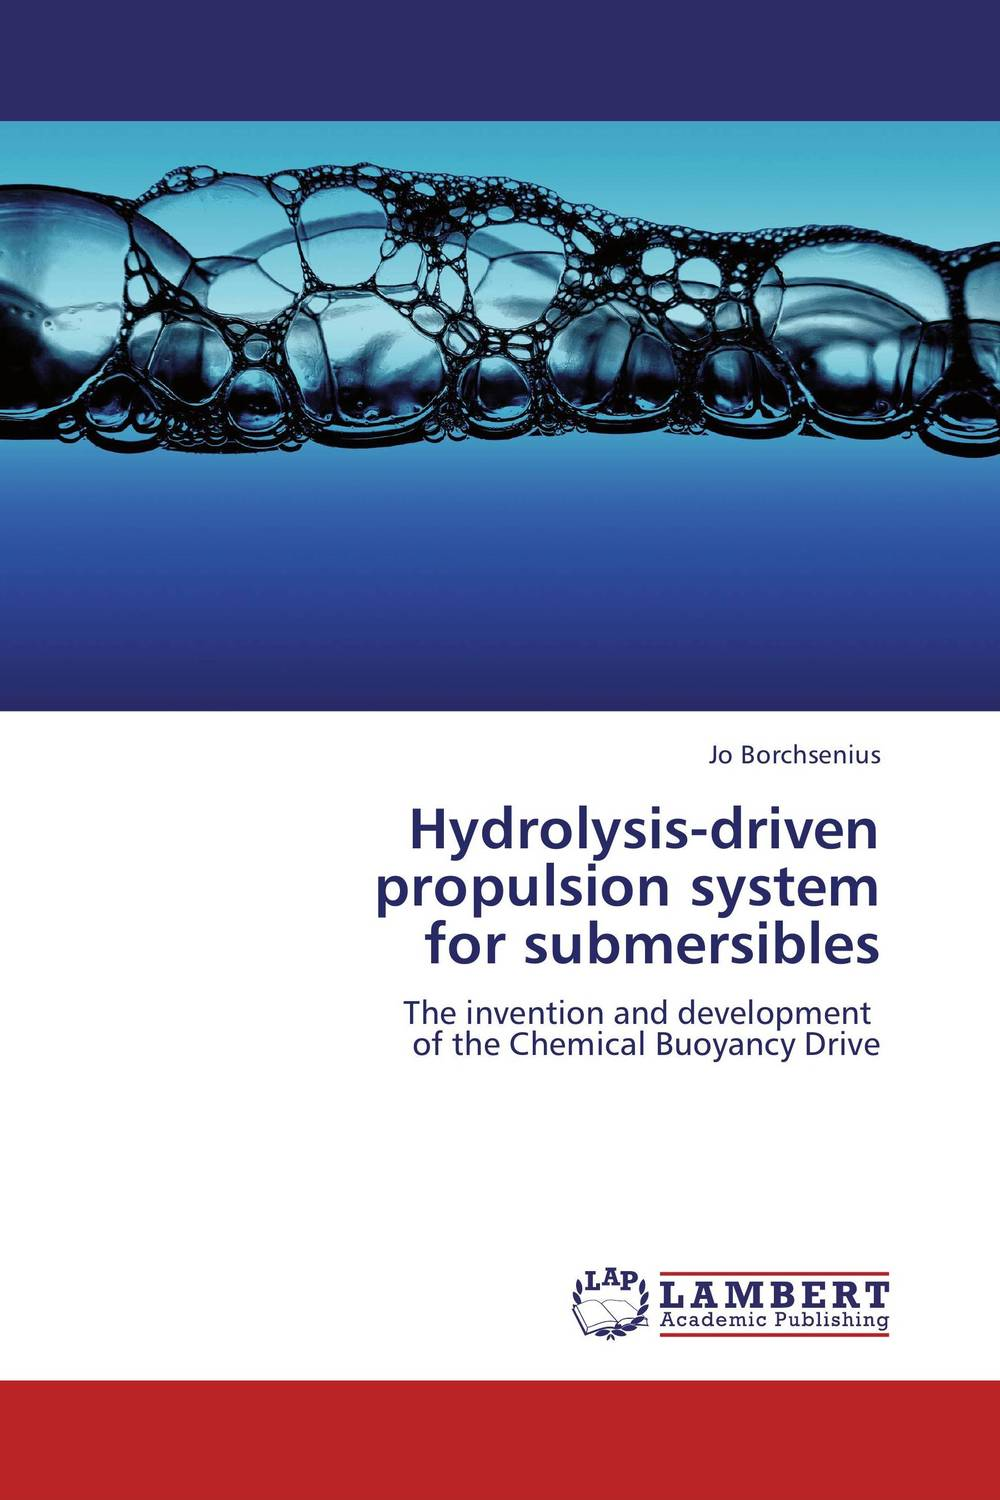 Hydrolysis-driven propulsion system  for submersibles driven to distraction